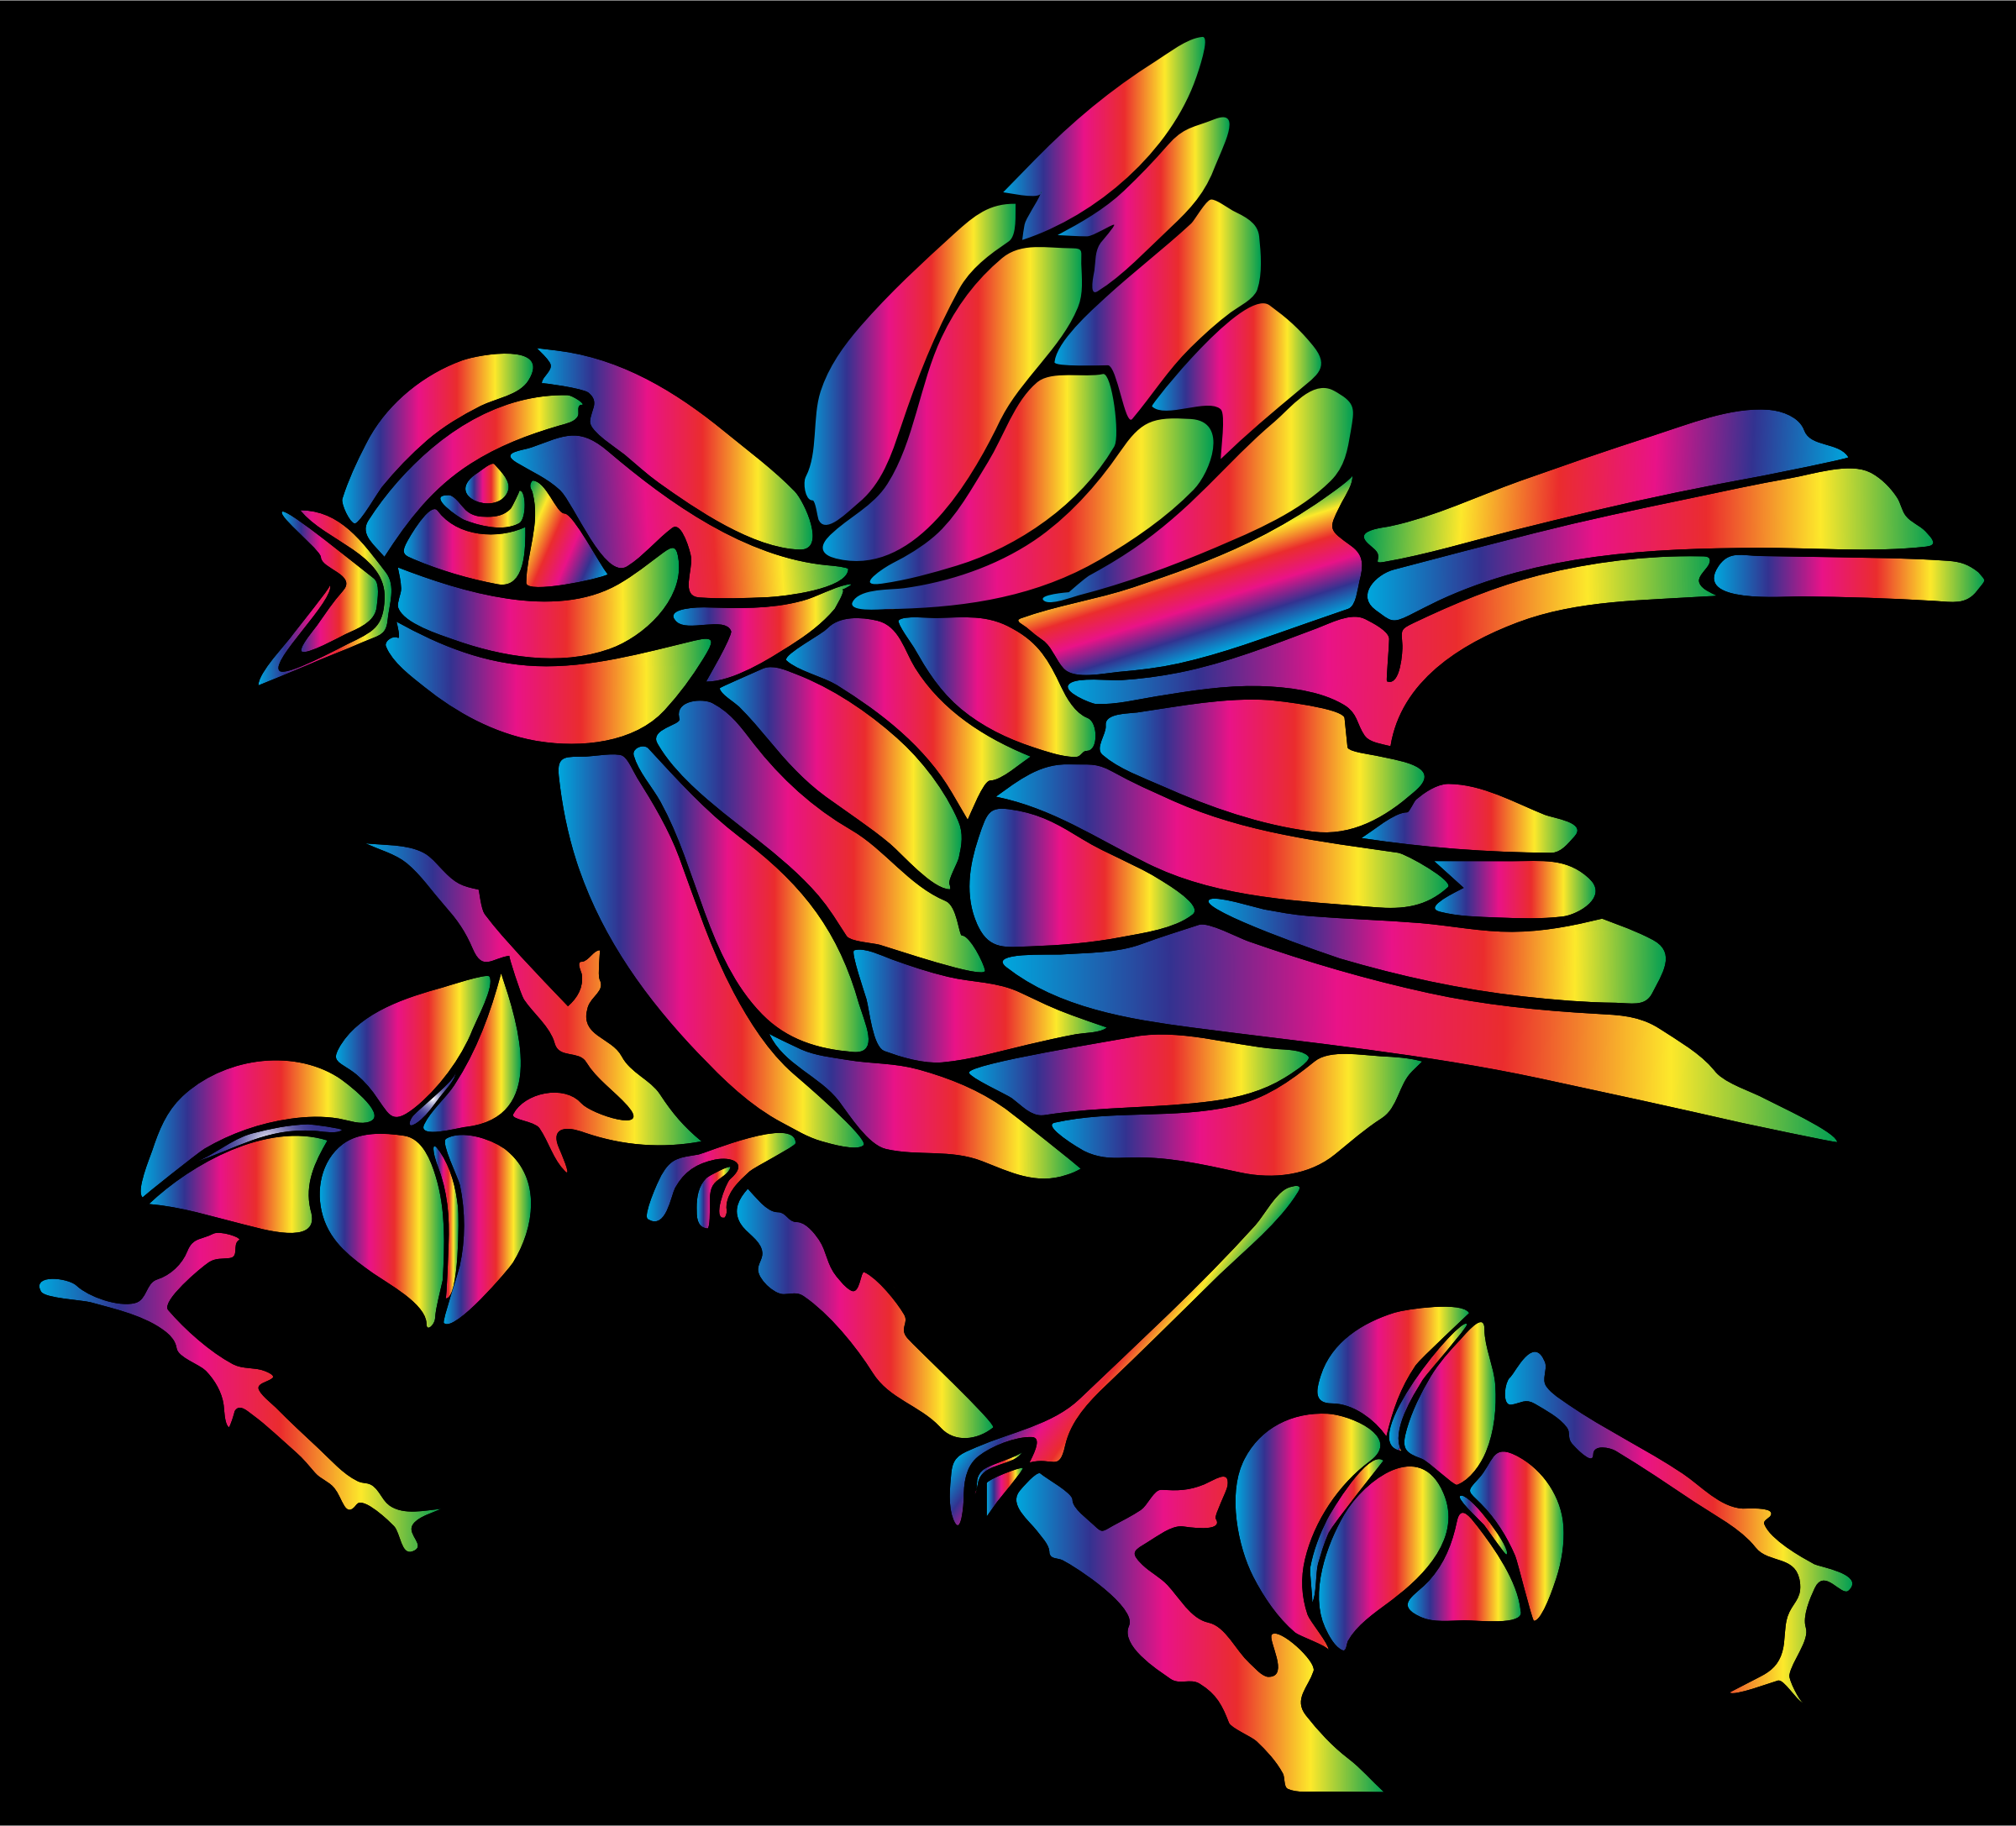 Prismatic Bird 8 by GDJ